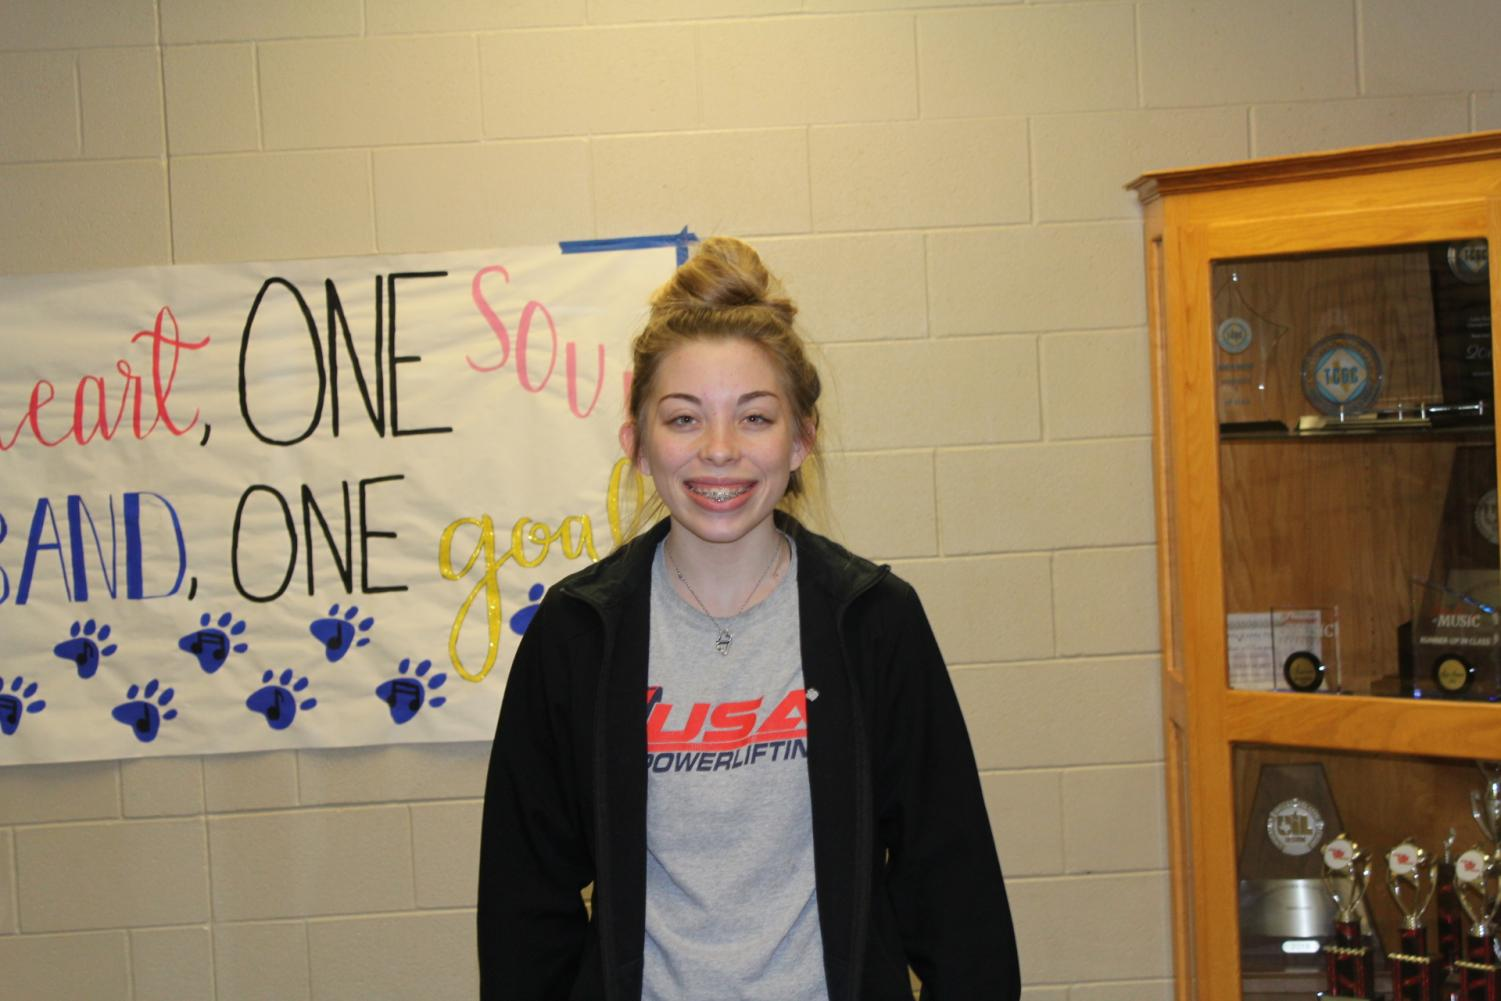 Junior Alyssa (Issa) Ayers placed third in the State Powerlifting Meet as a sophomore in 2019, has broken many records and plans on breaking more this year.